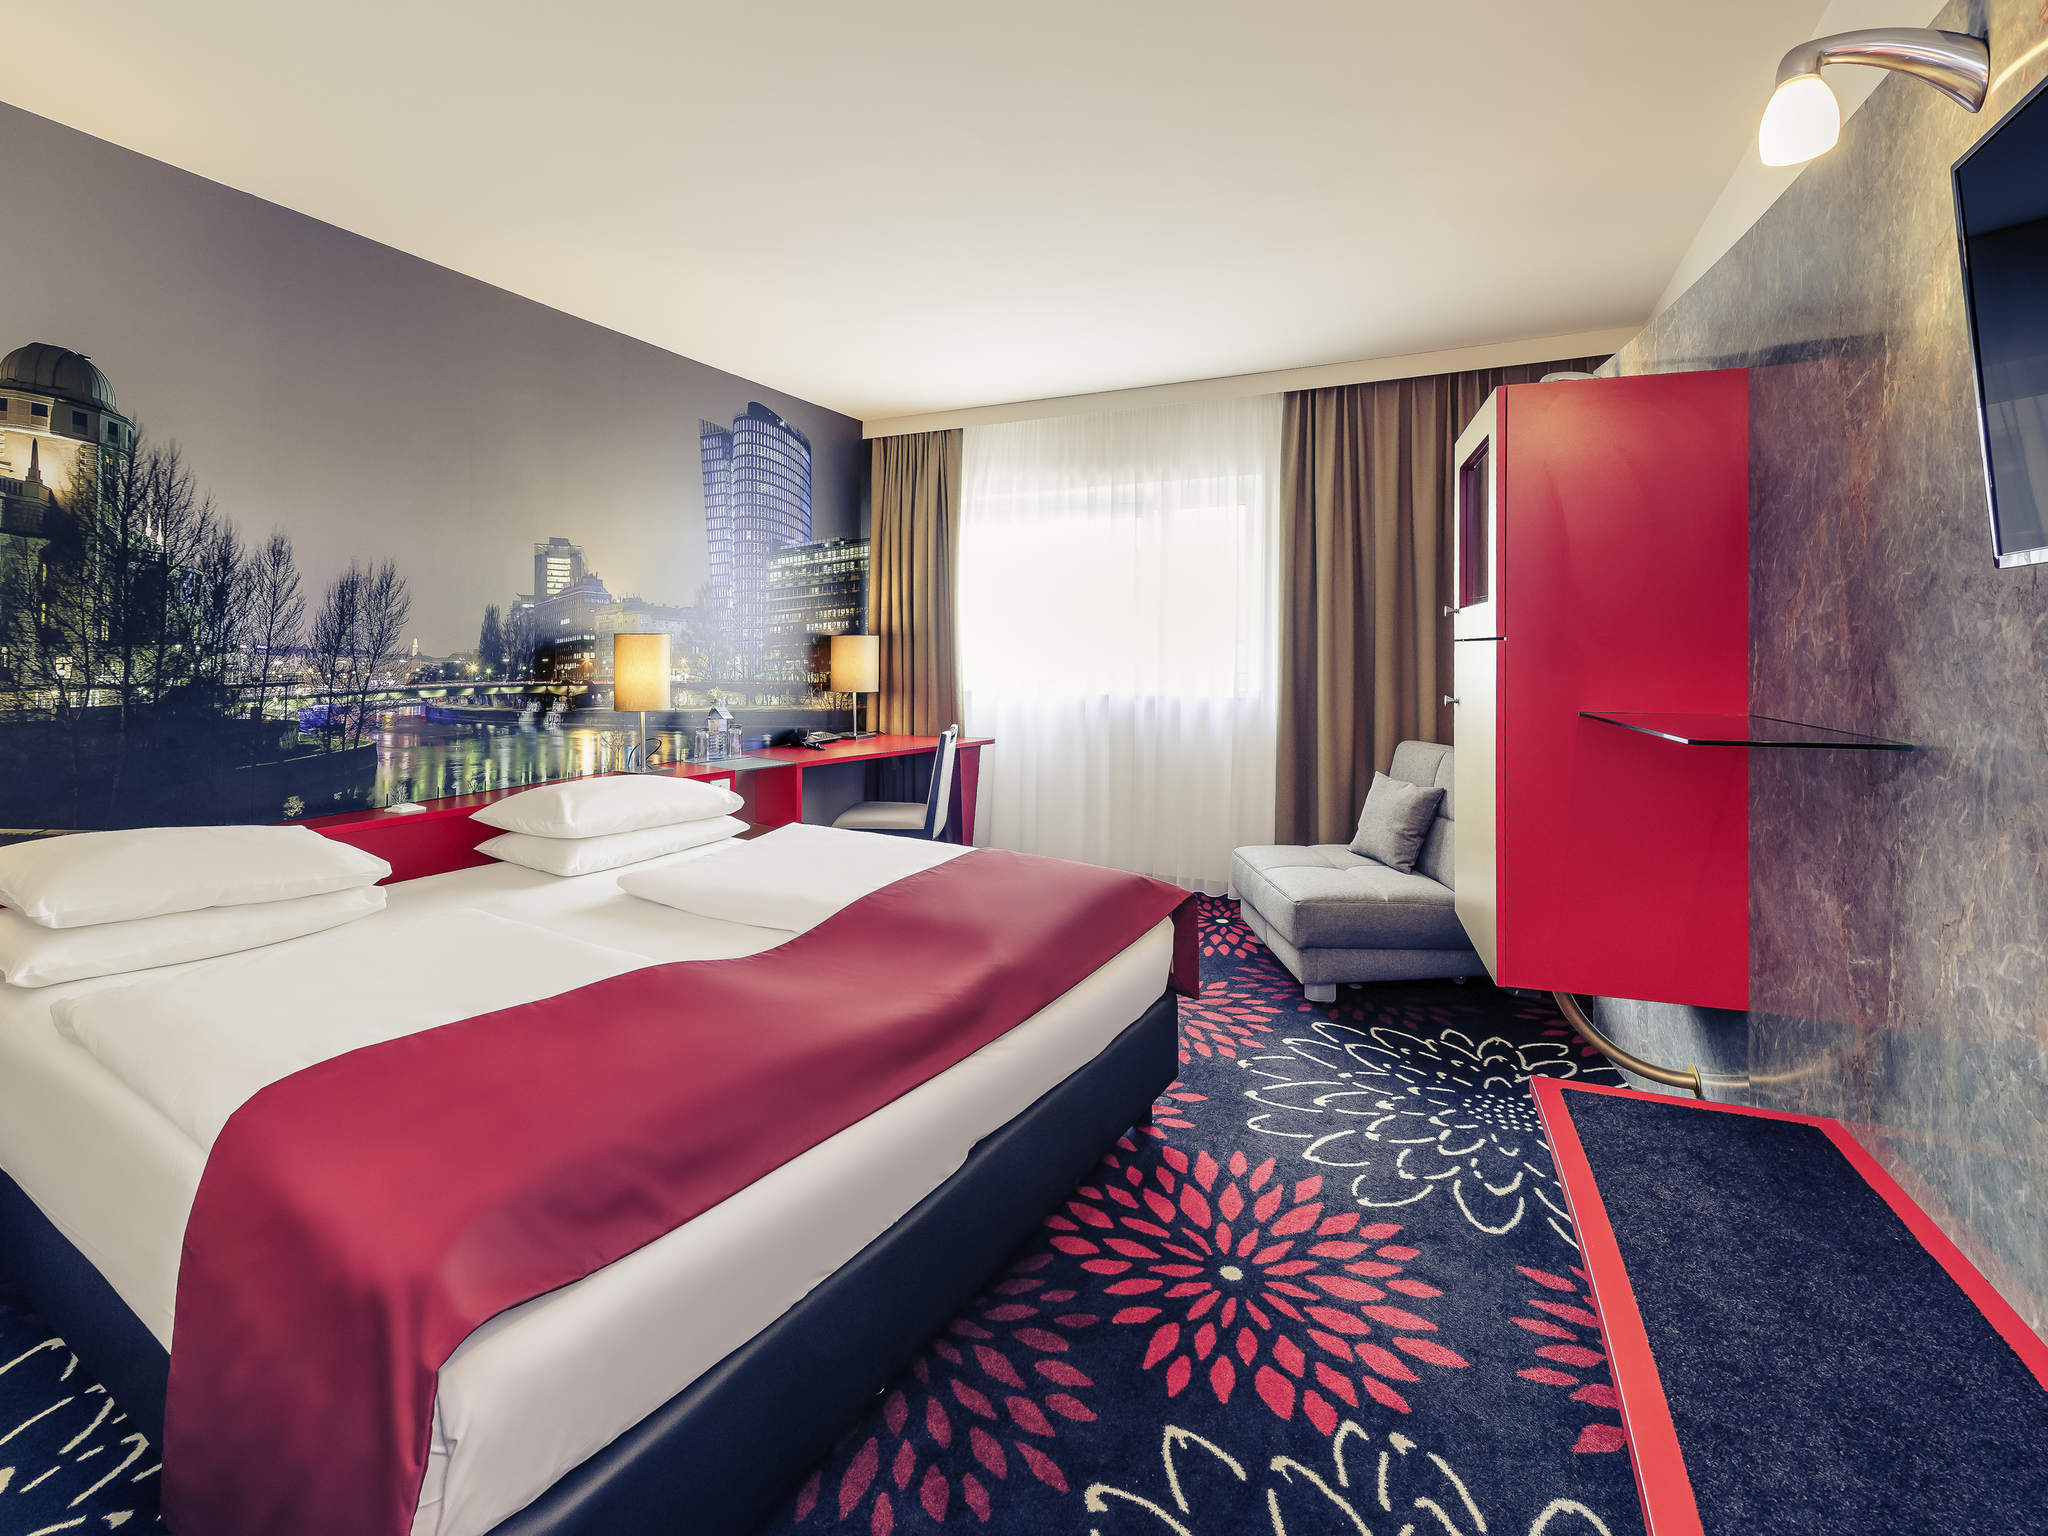 Hotel – Hotel Mercure Wien City